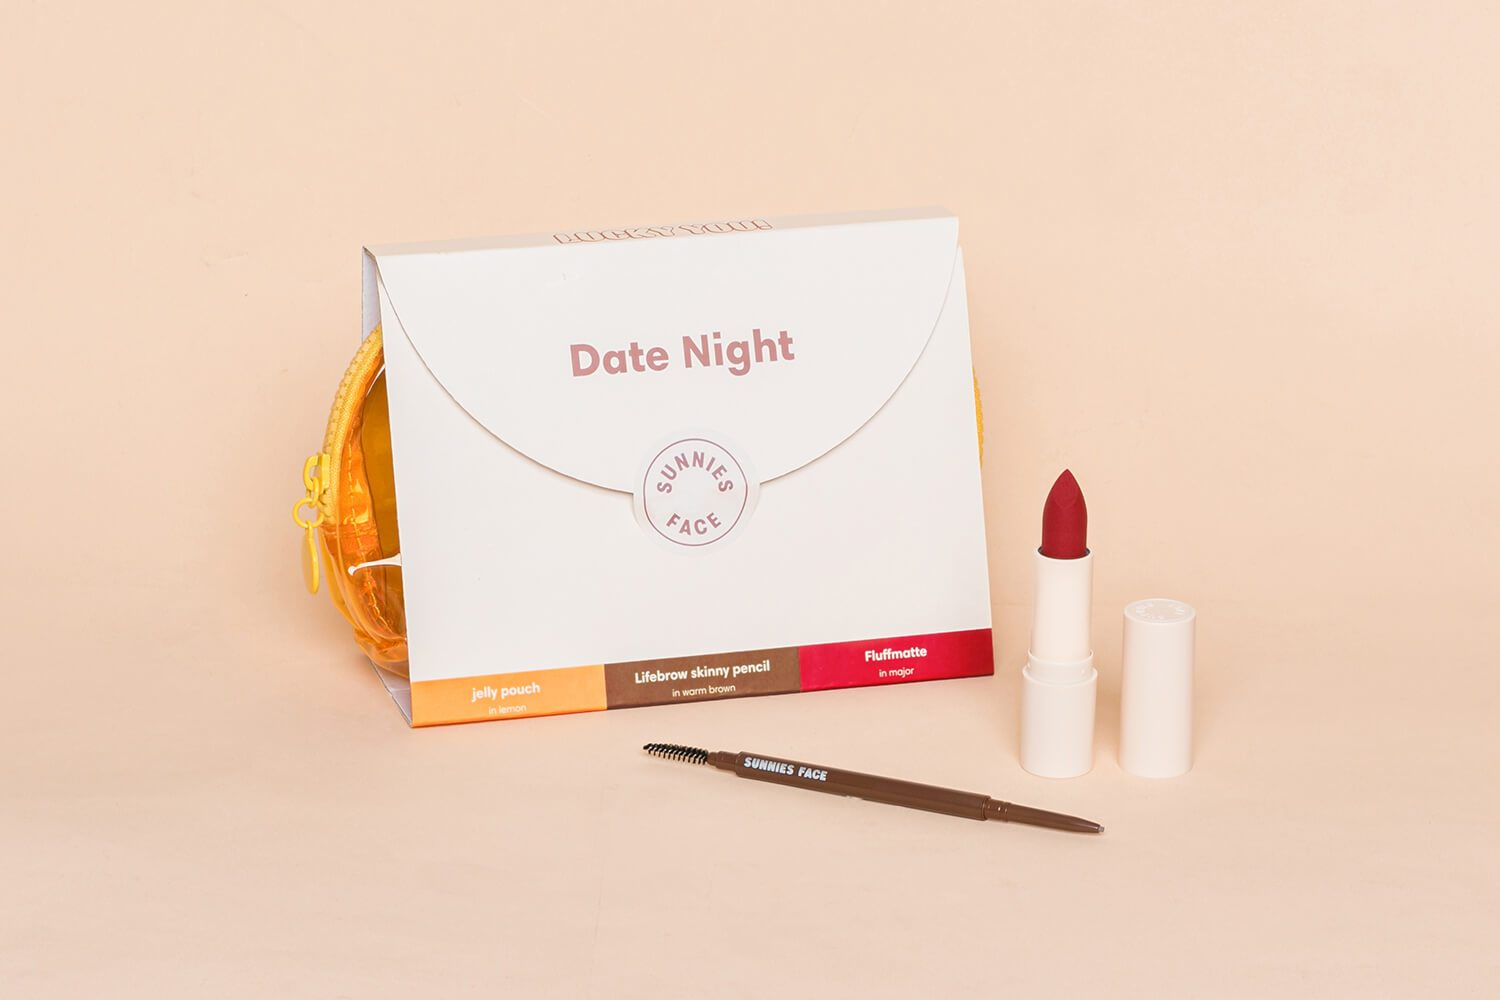 Sunnies Face Holiday Kit - Date Night